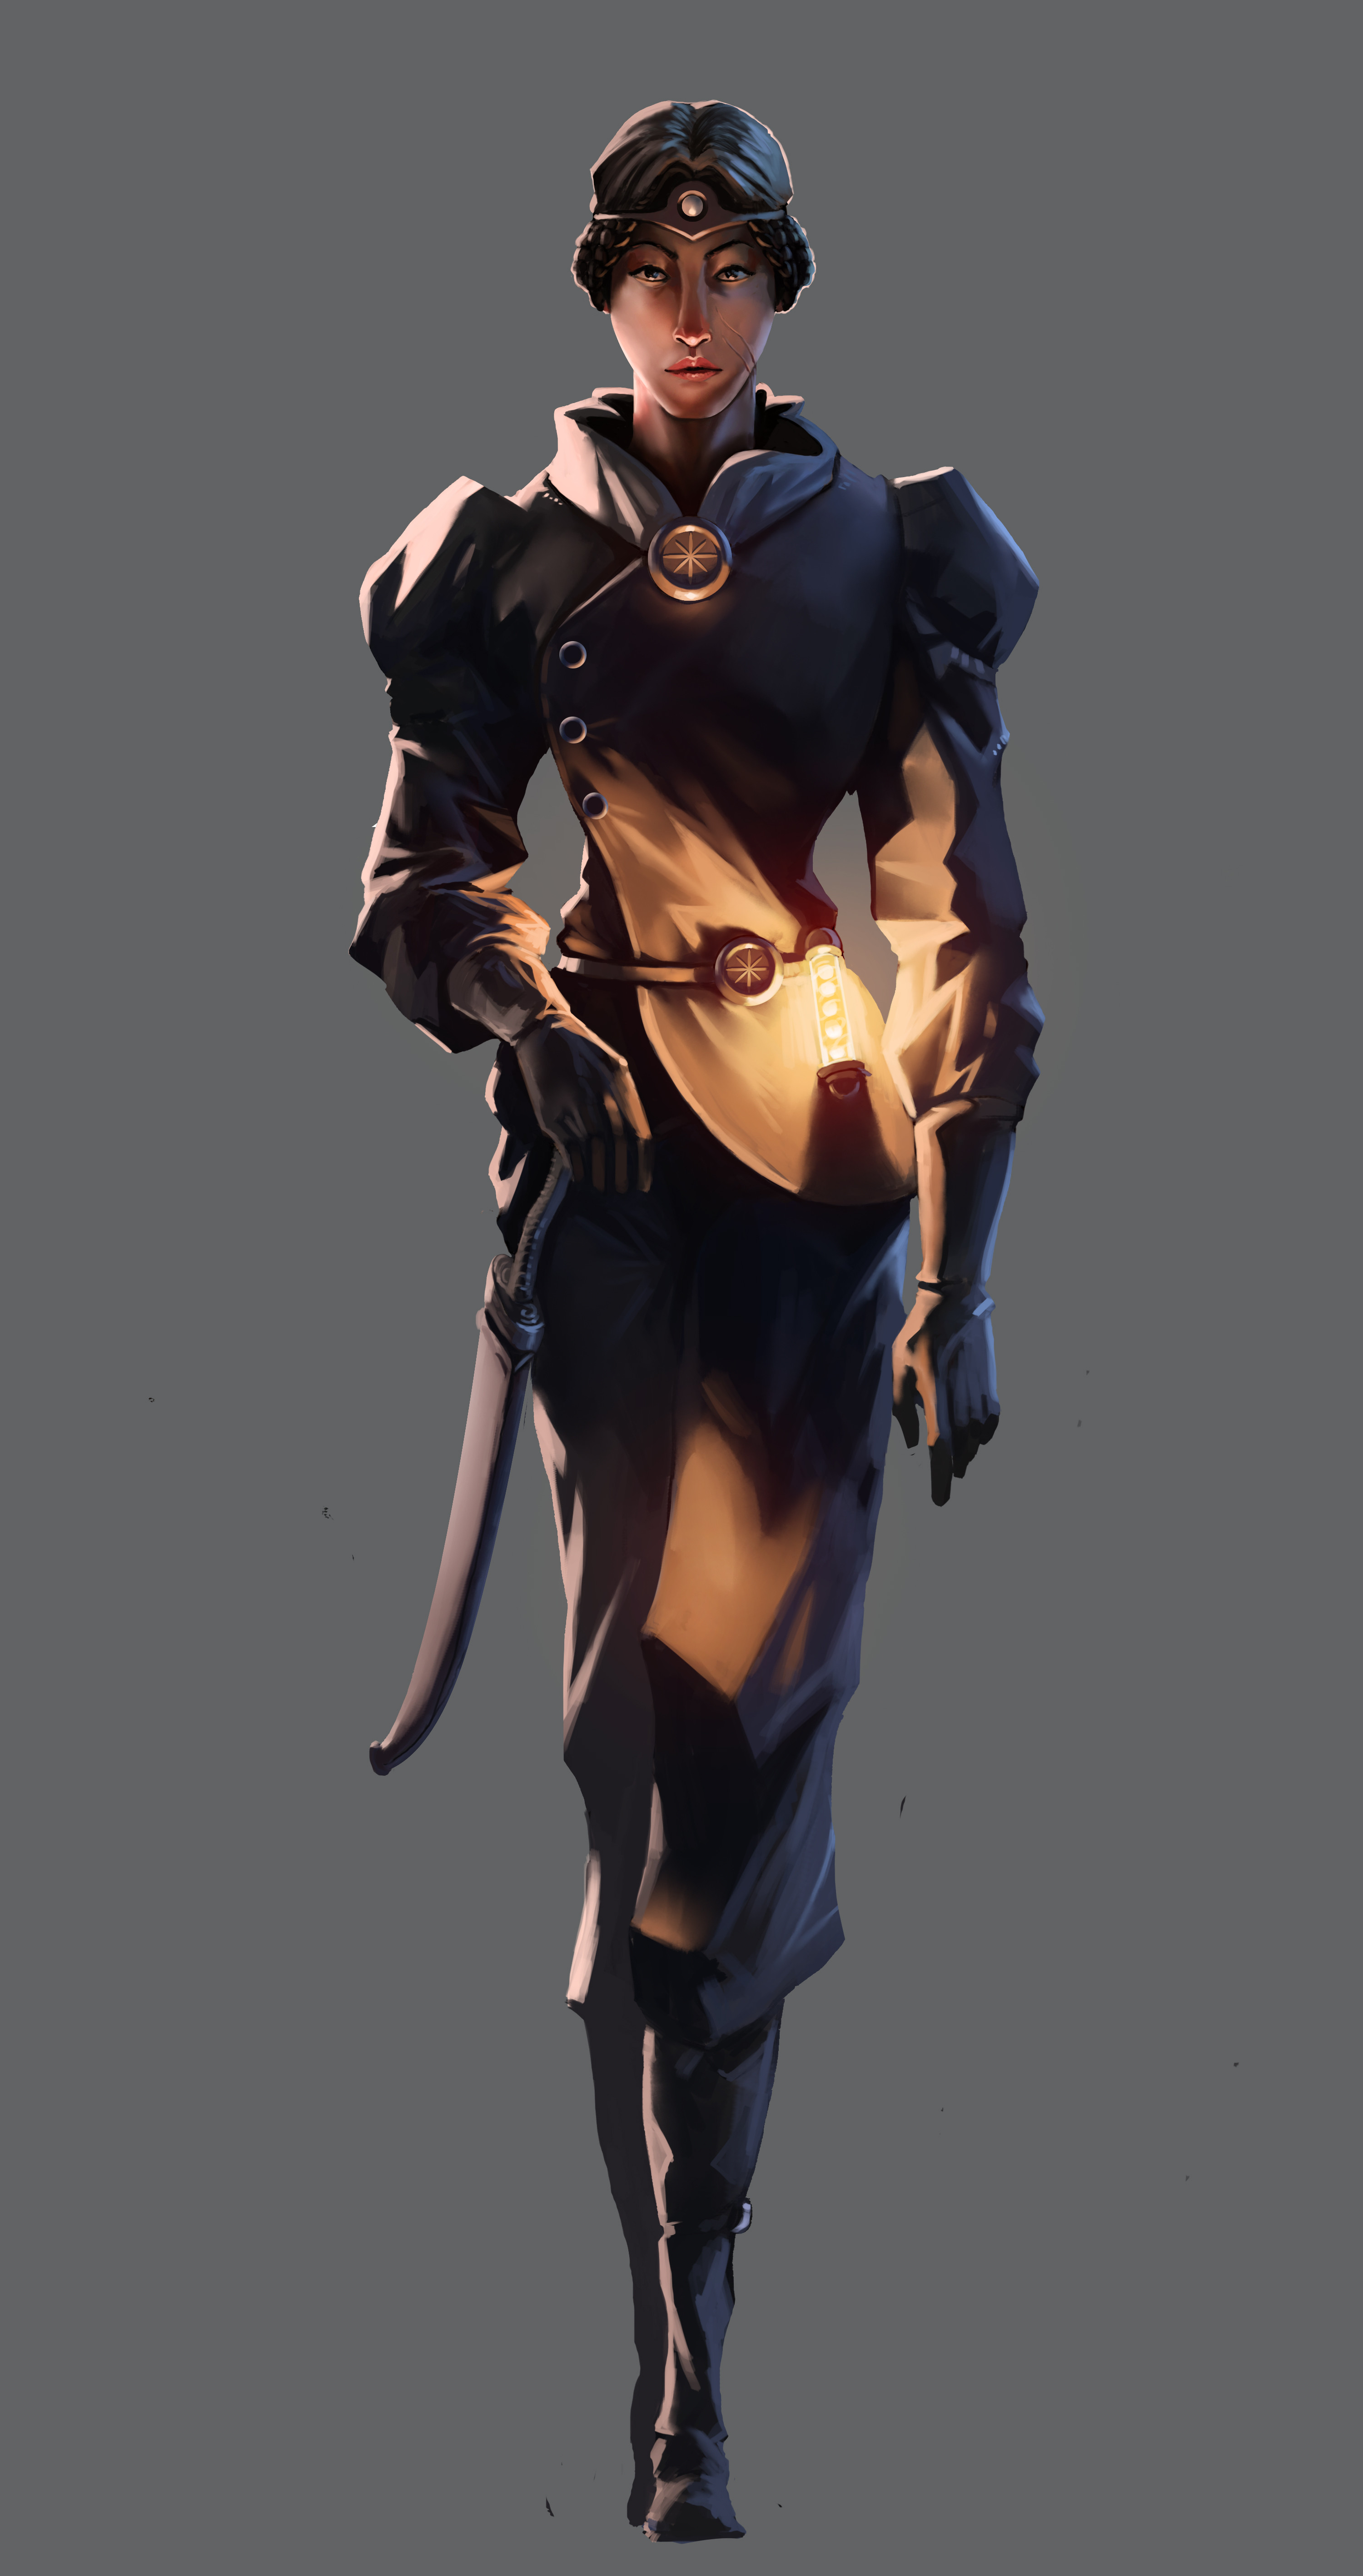 """First Character Class: """"The Calm Warrior"""". She's the one that established the final style for the other characters"""